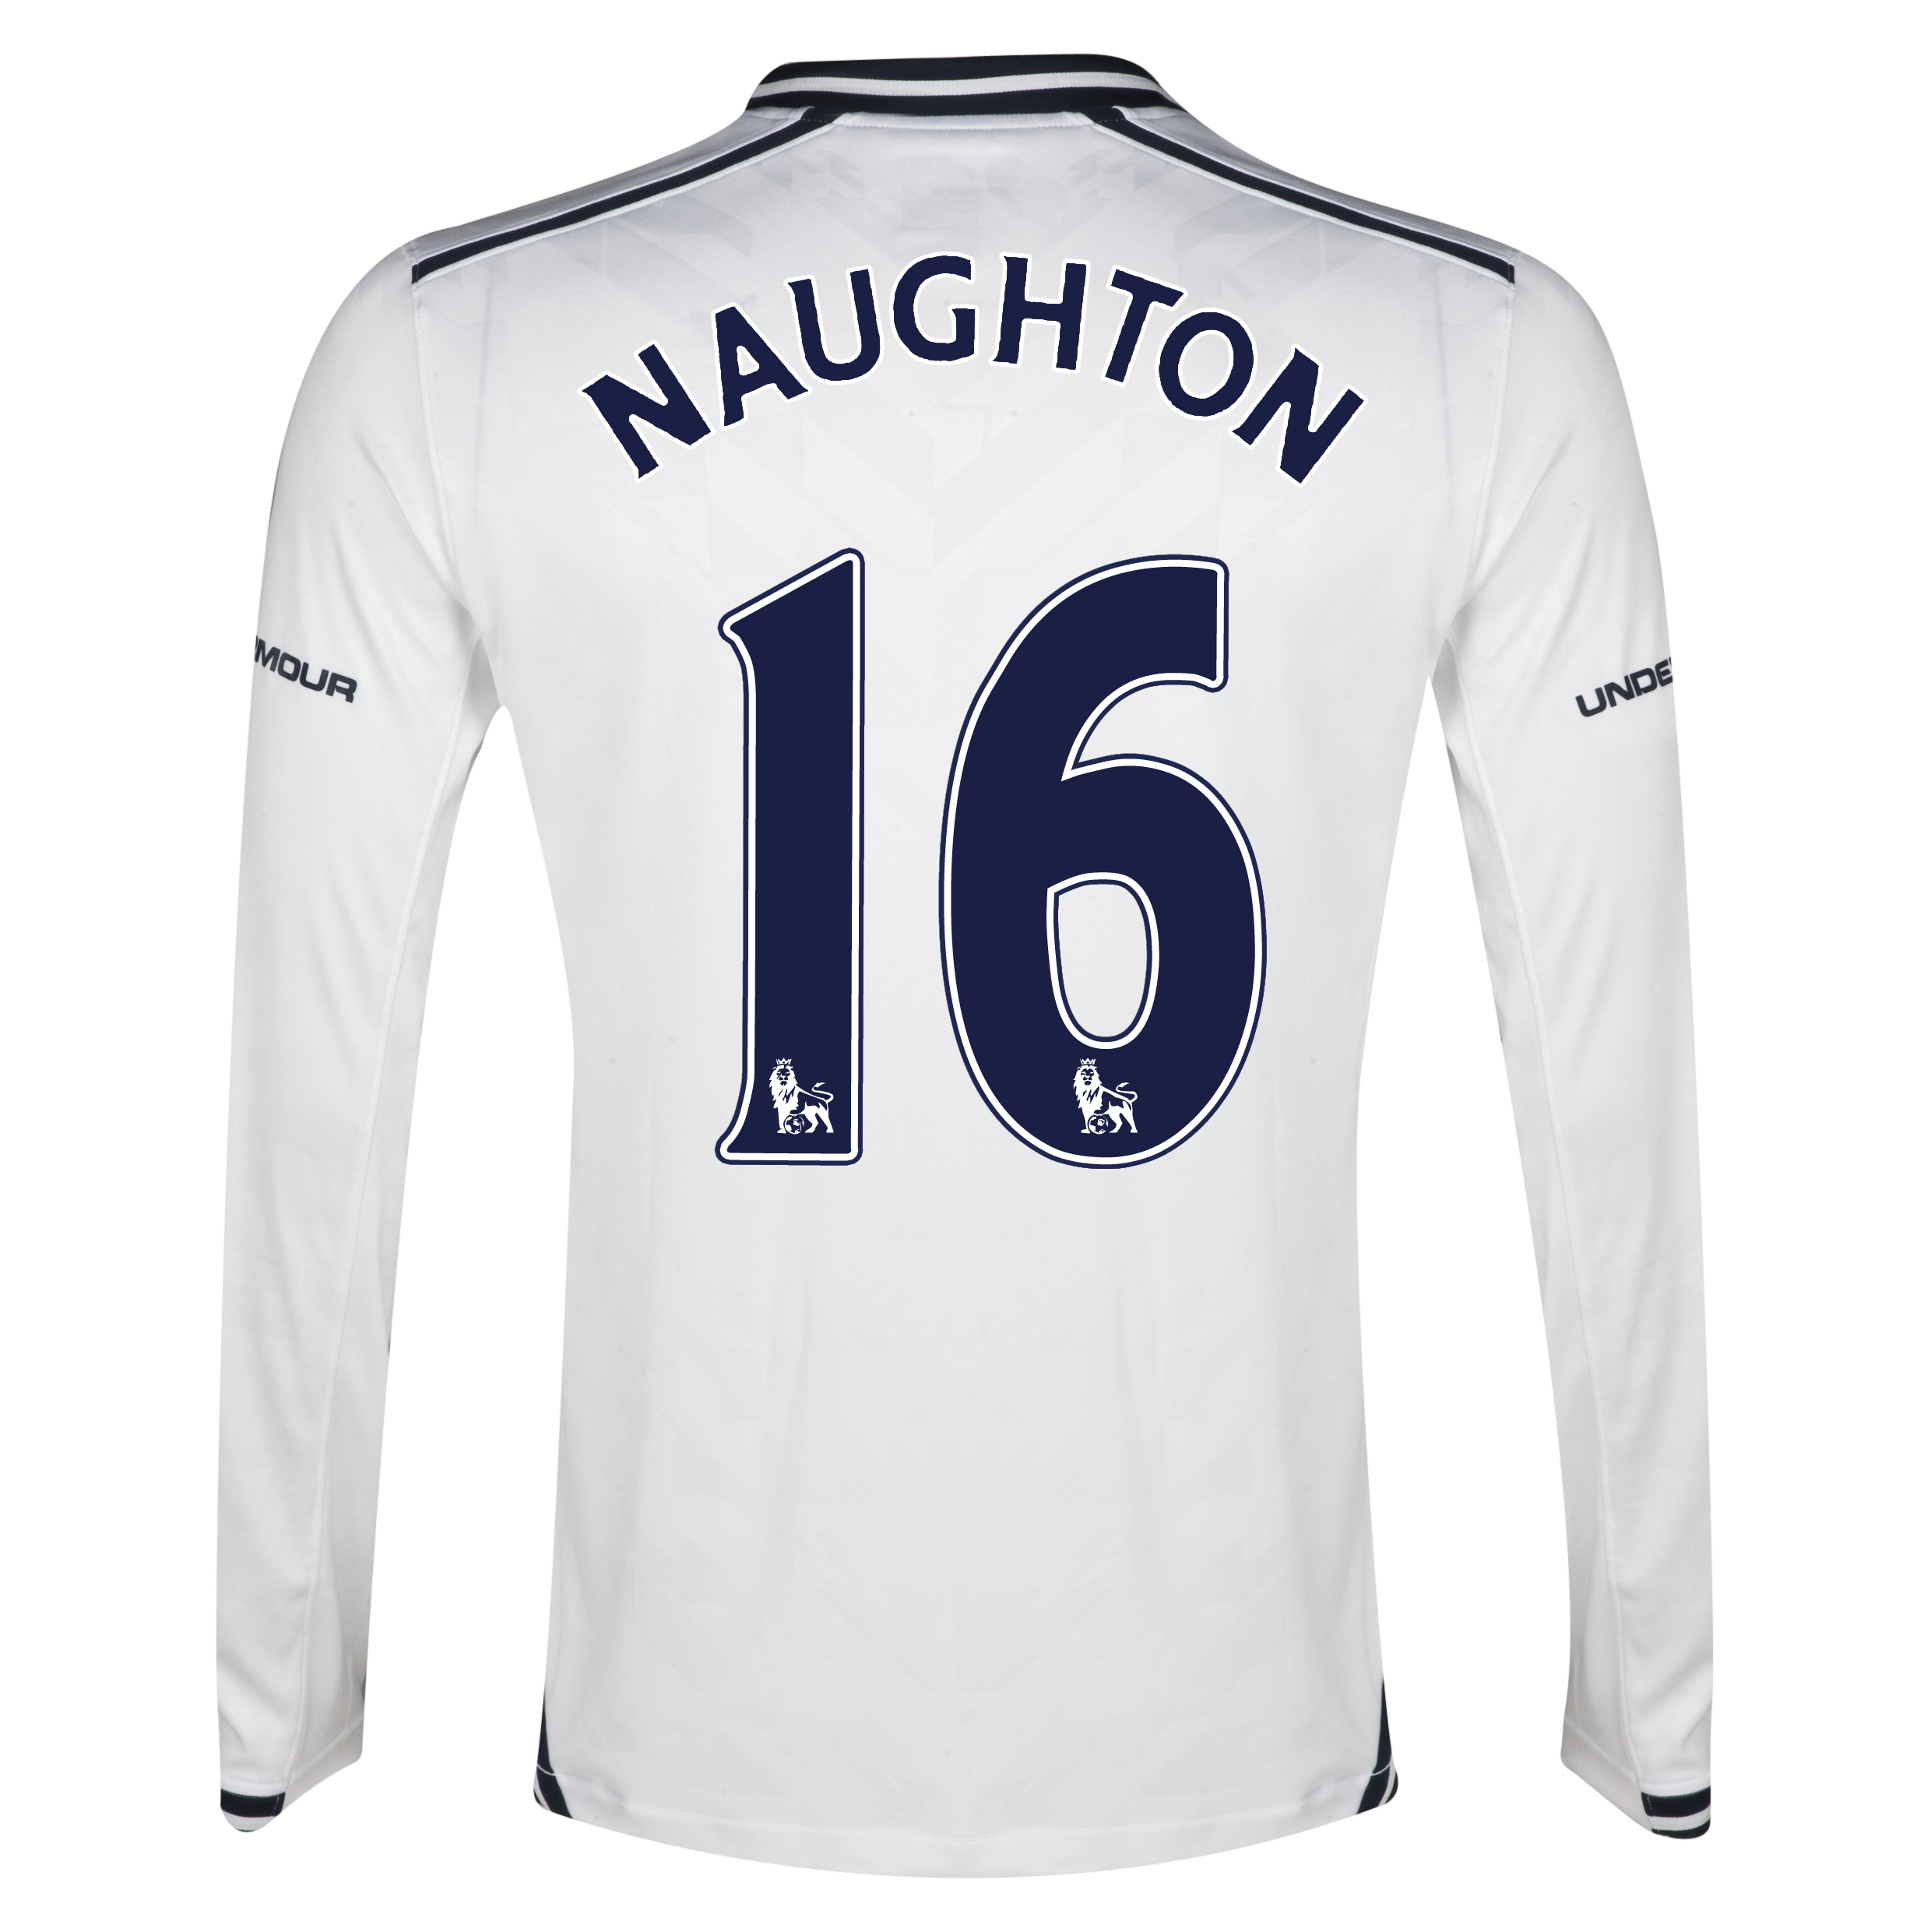 Tottenham Hotspur Home Shirt 2013/14 - Long Sleeve with Naughton 16 printing